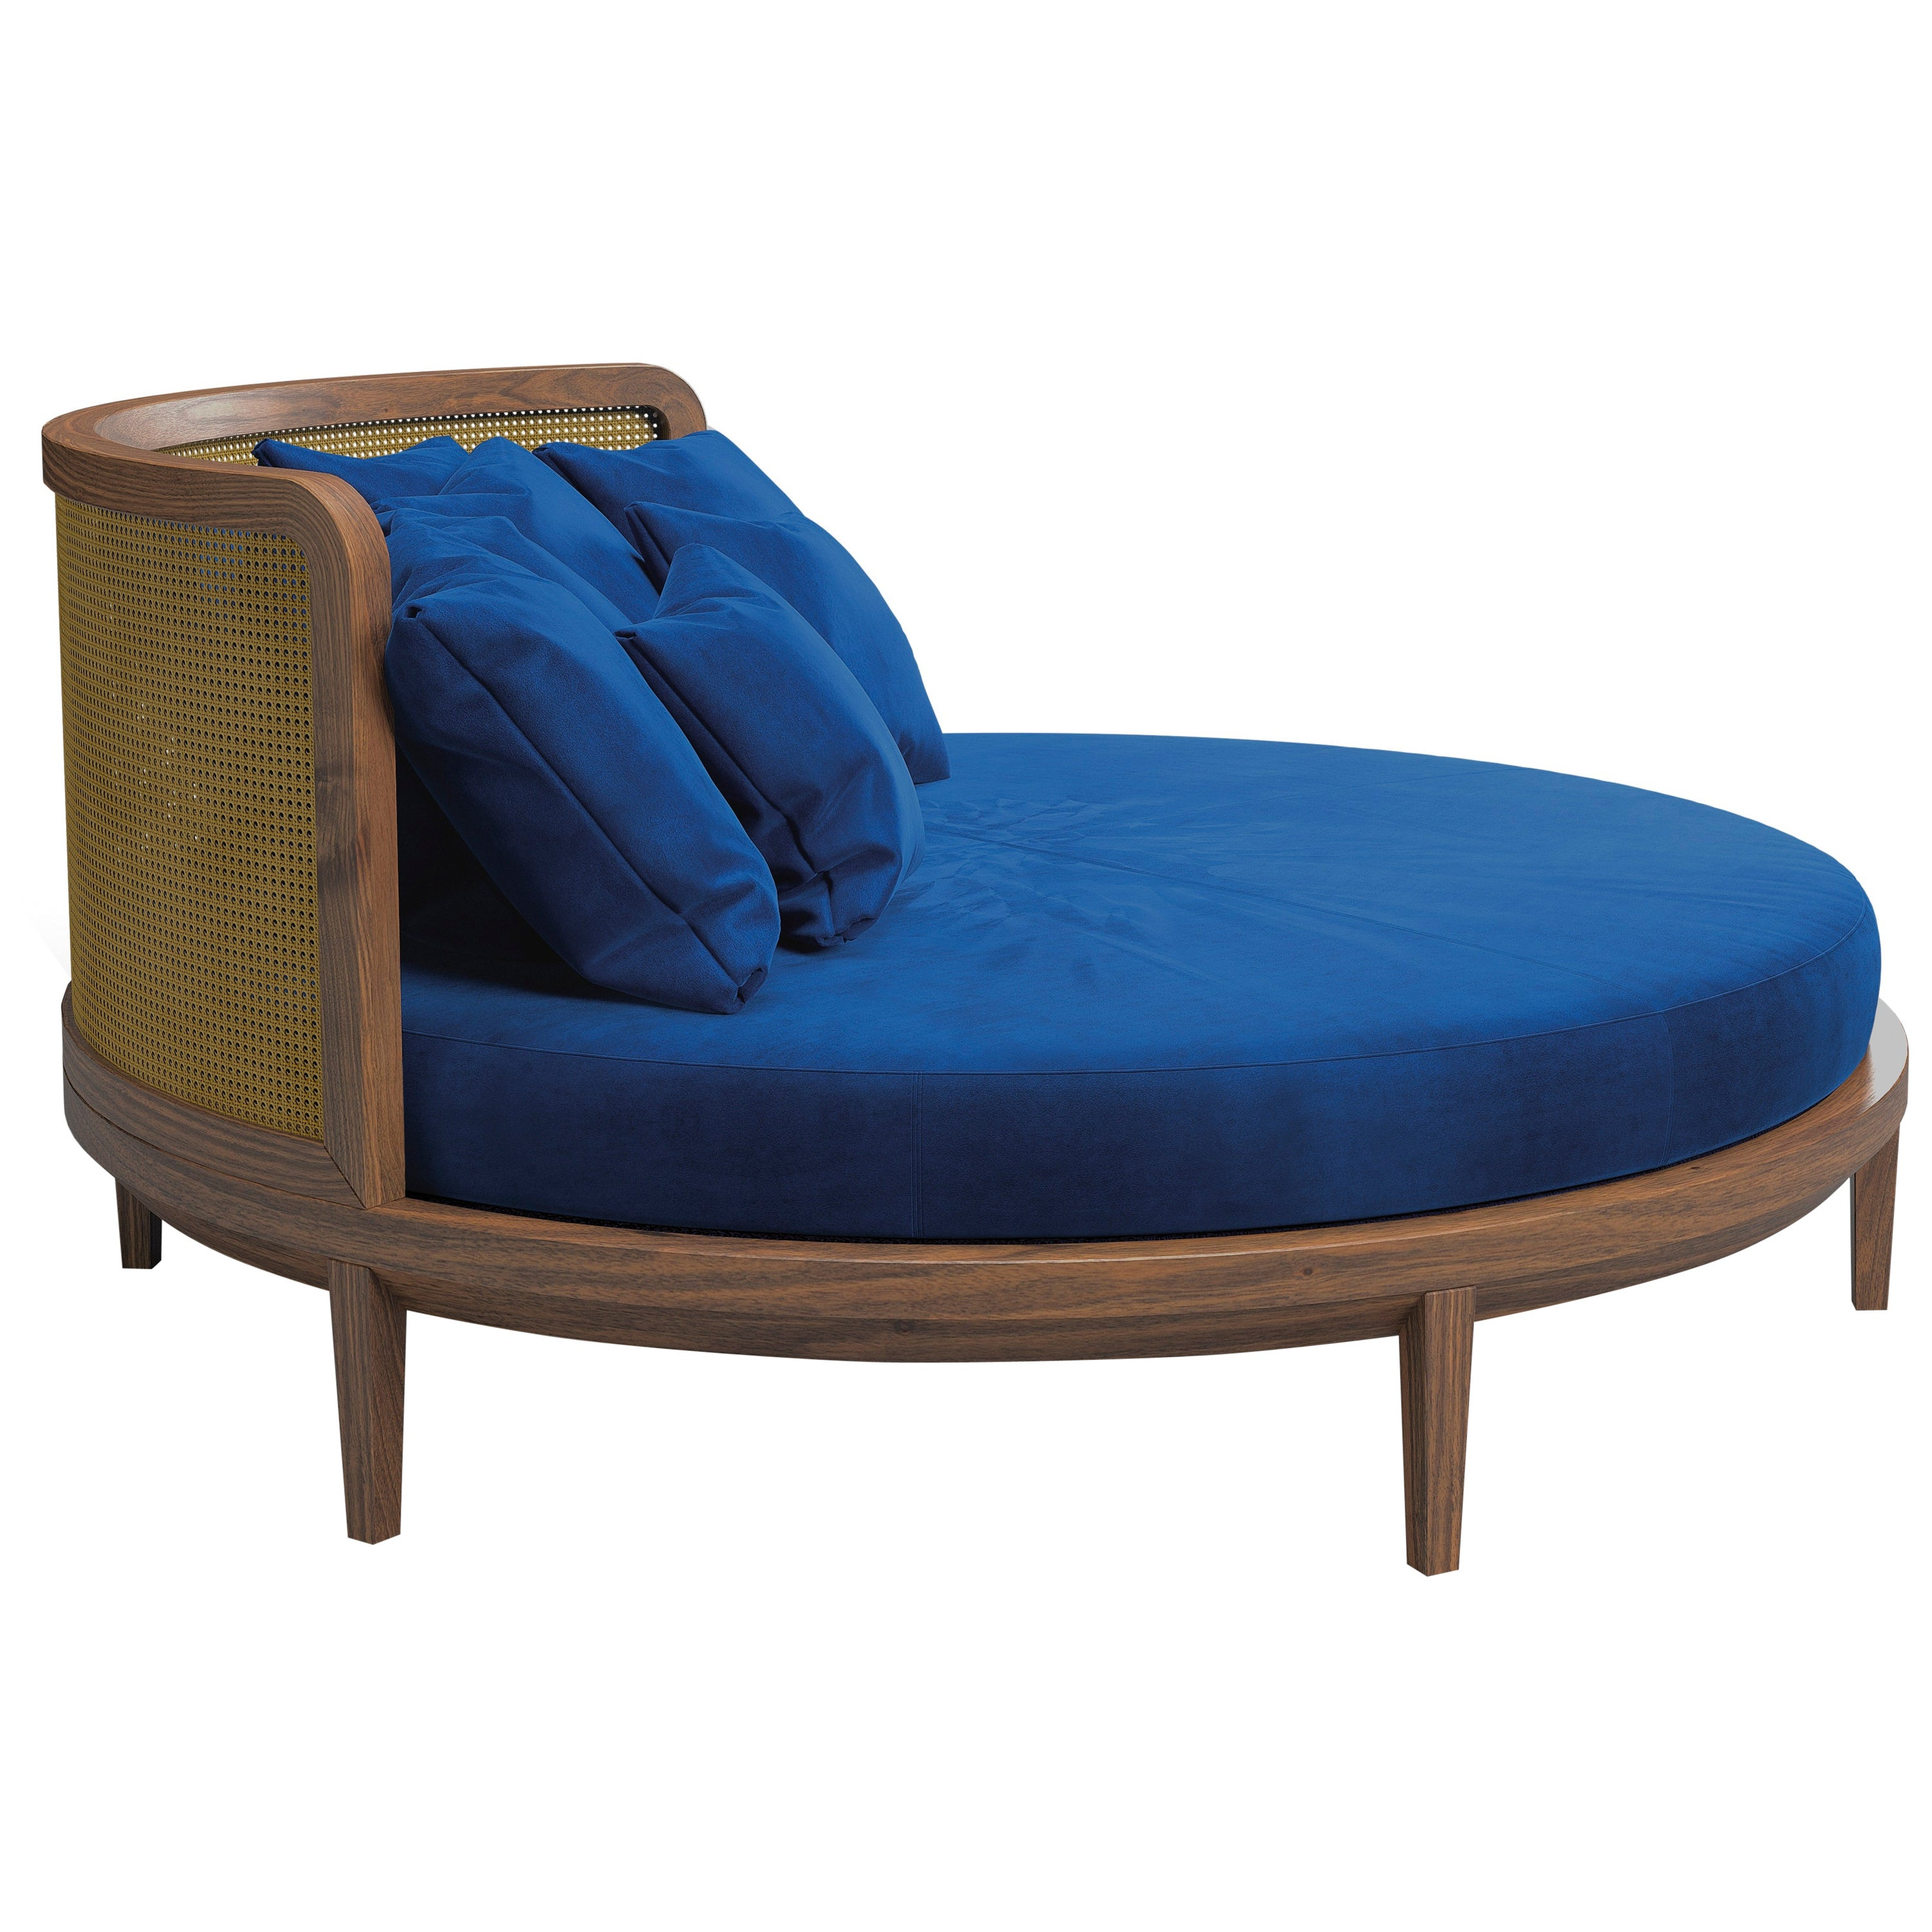 Contemporary Round Bed, Handmade in Italy